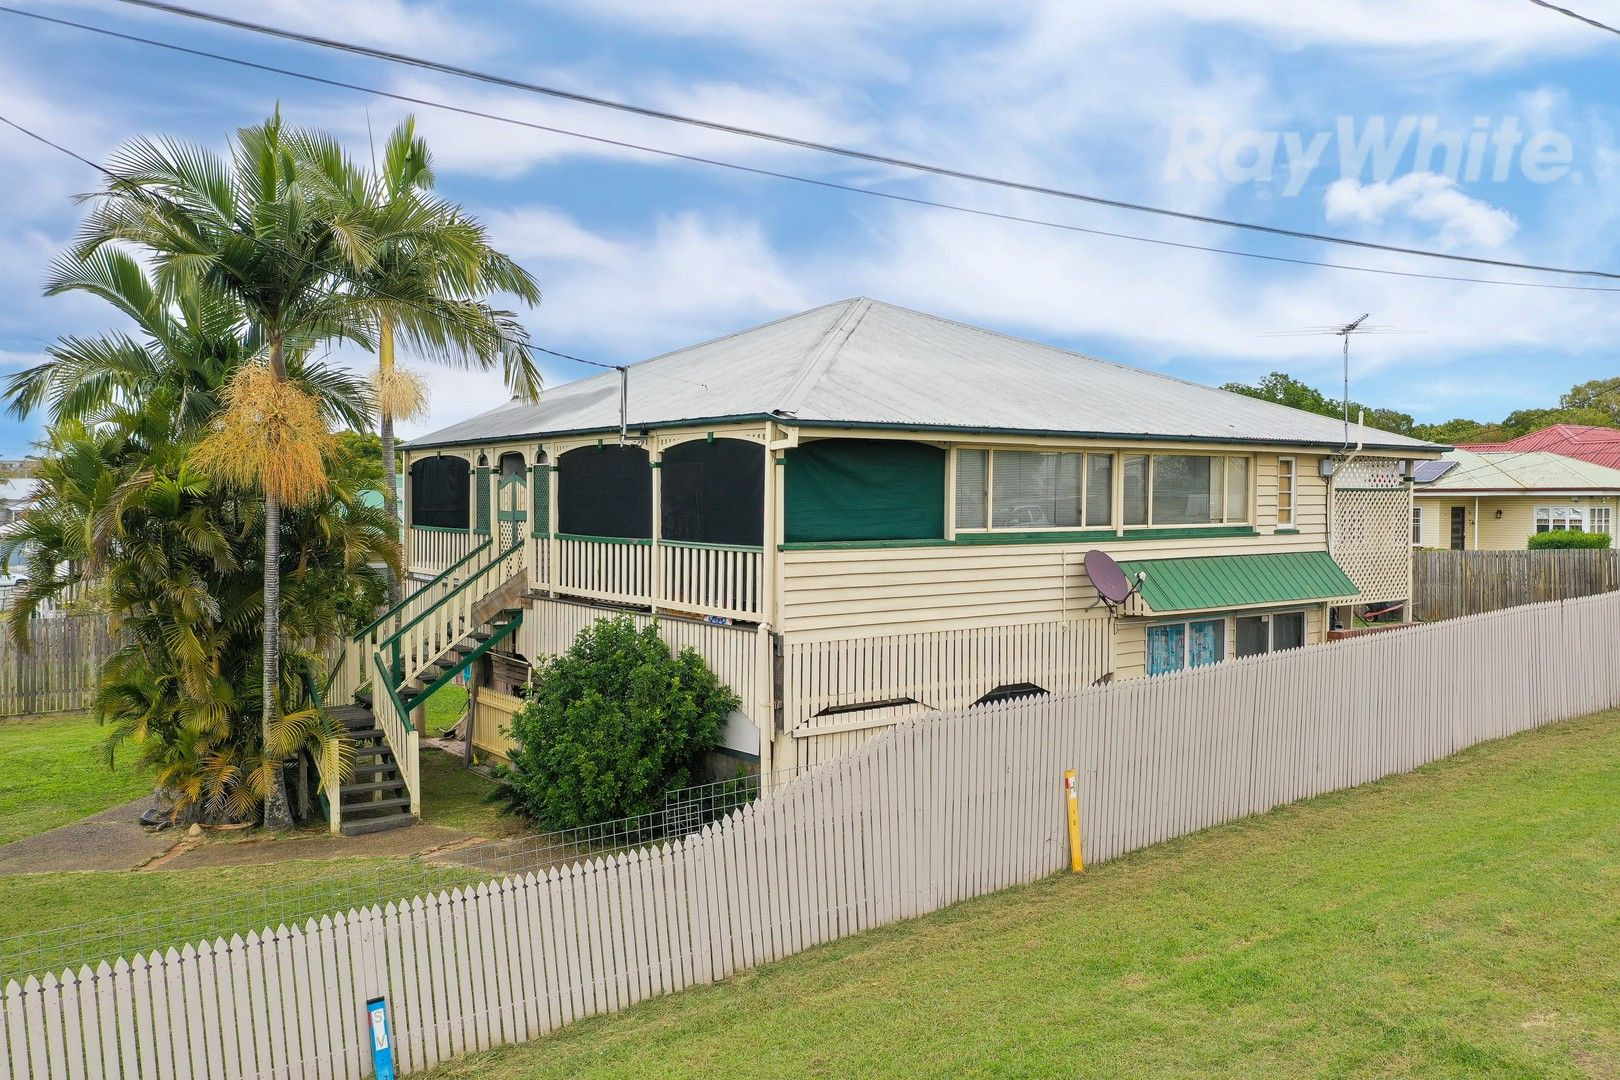 10 North Station Road, North Booval QLD 4304, Image 0